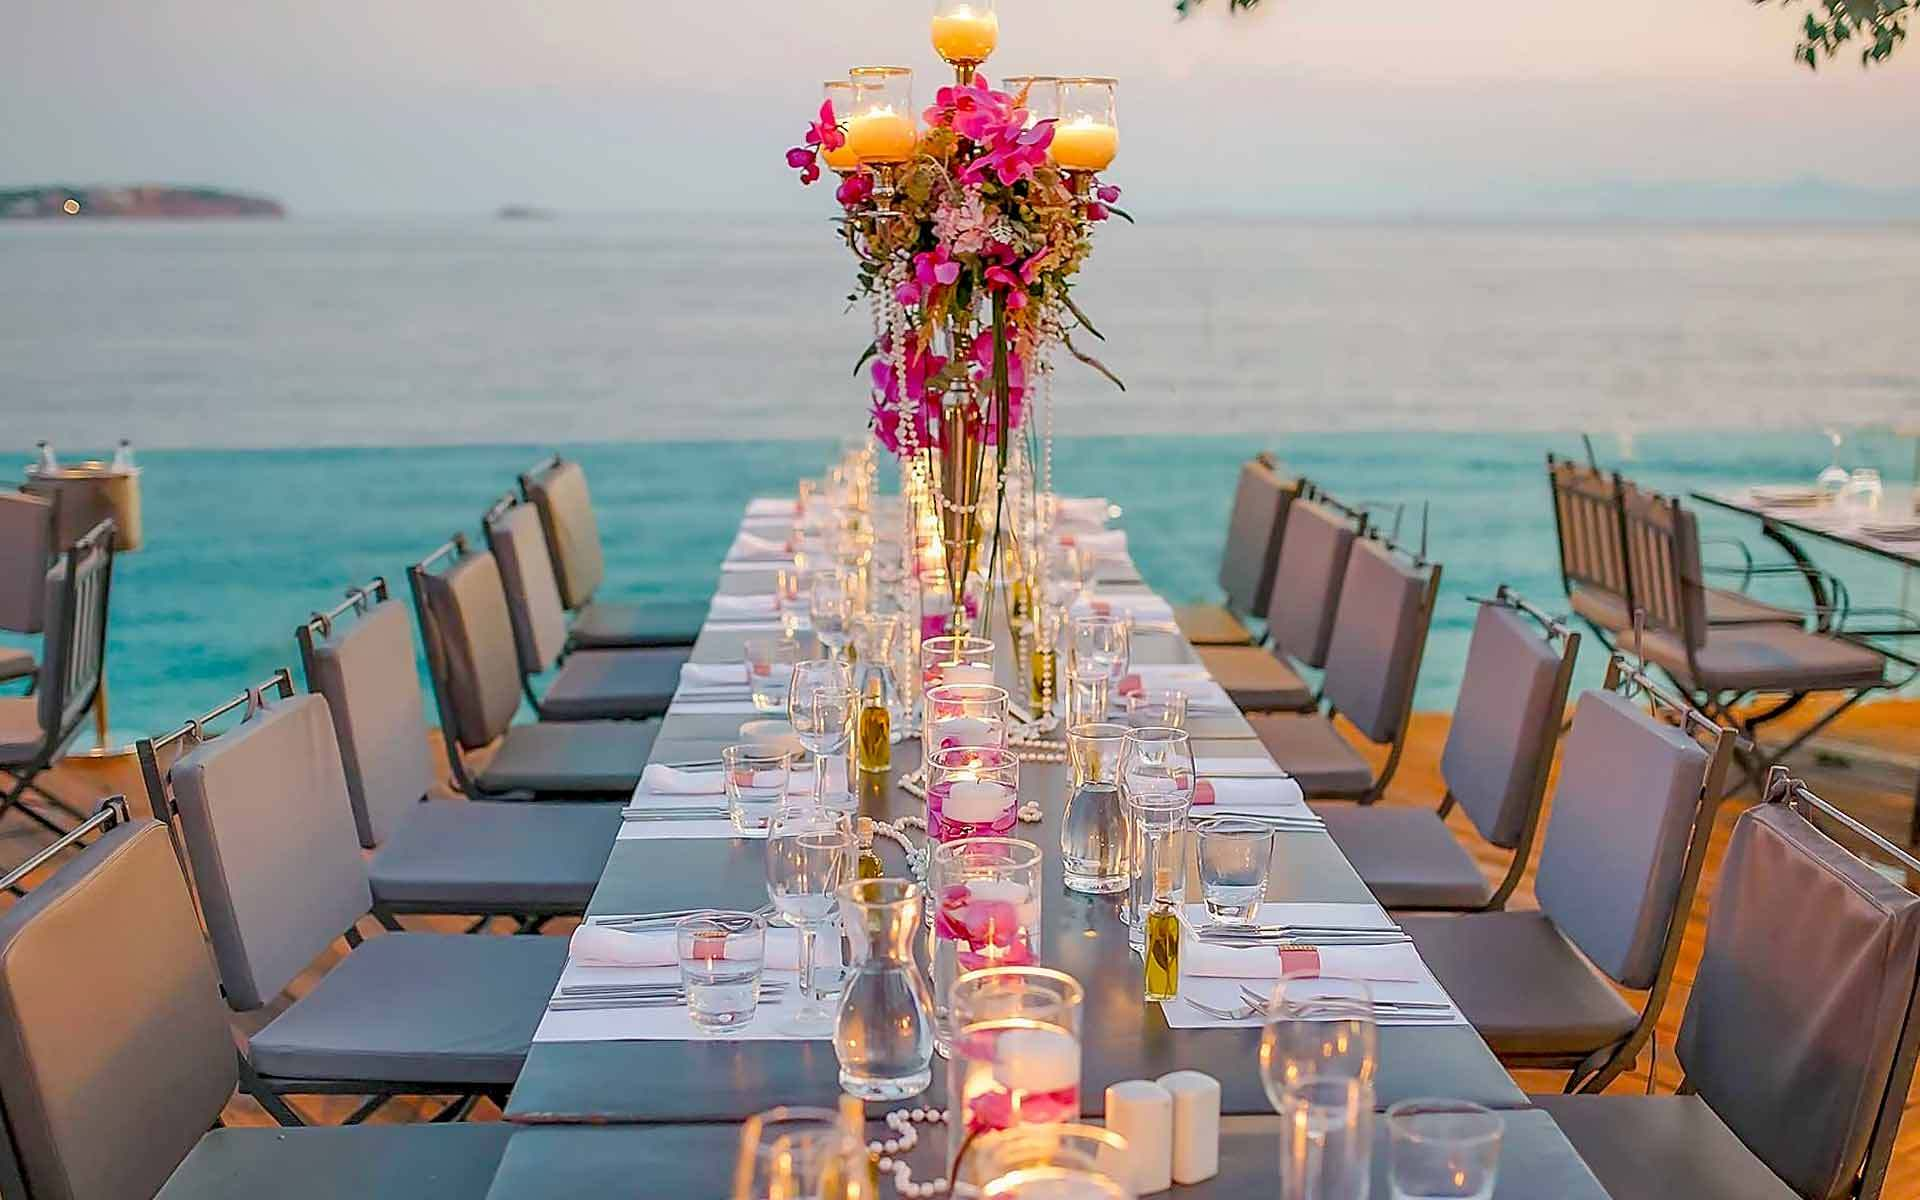 Wonderful-Romantic-Dinner-By-The-Sea-In-Vive-Mar-Vouliagmeni-Athens-Greece